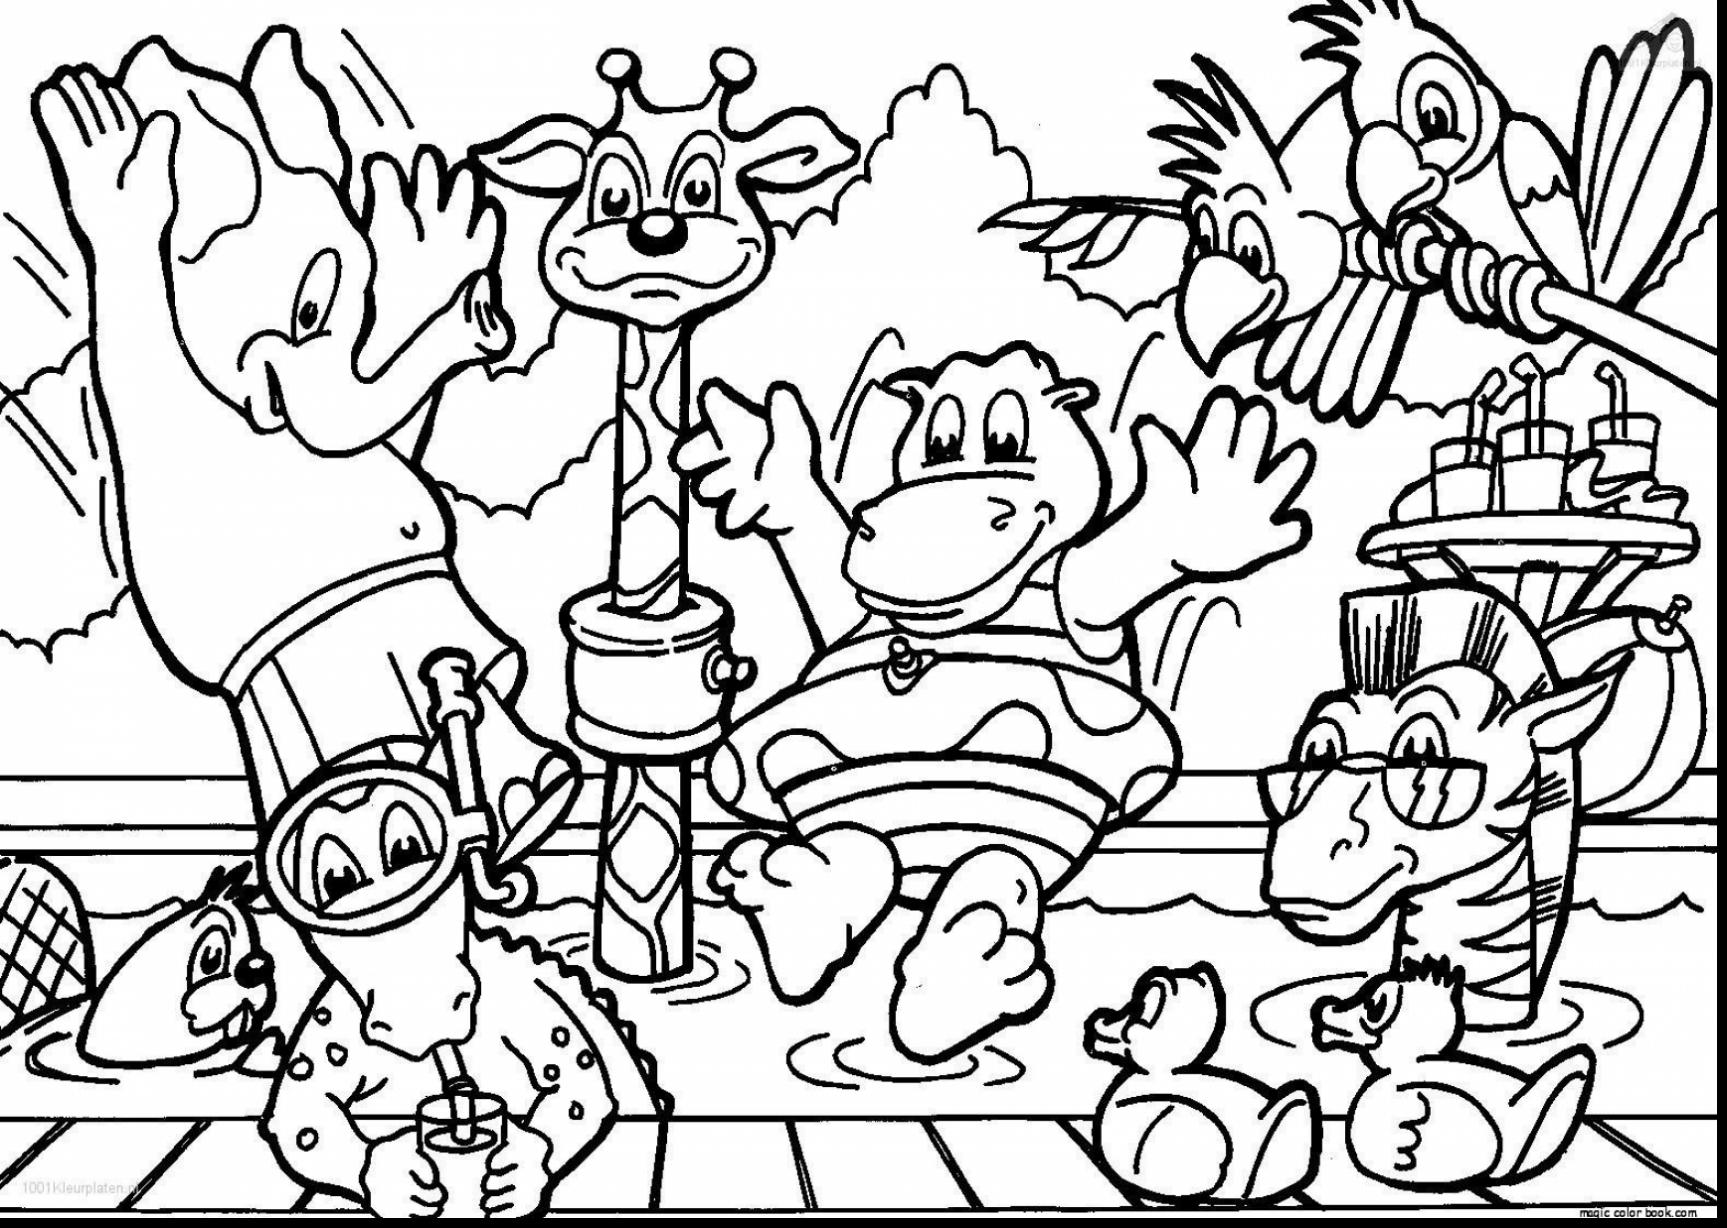 1727x1228 Proven Coloring Pages Of Baby Zoo Animals Cute